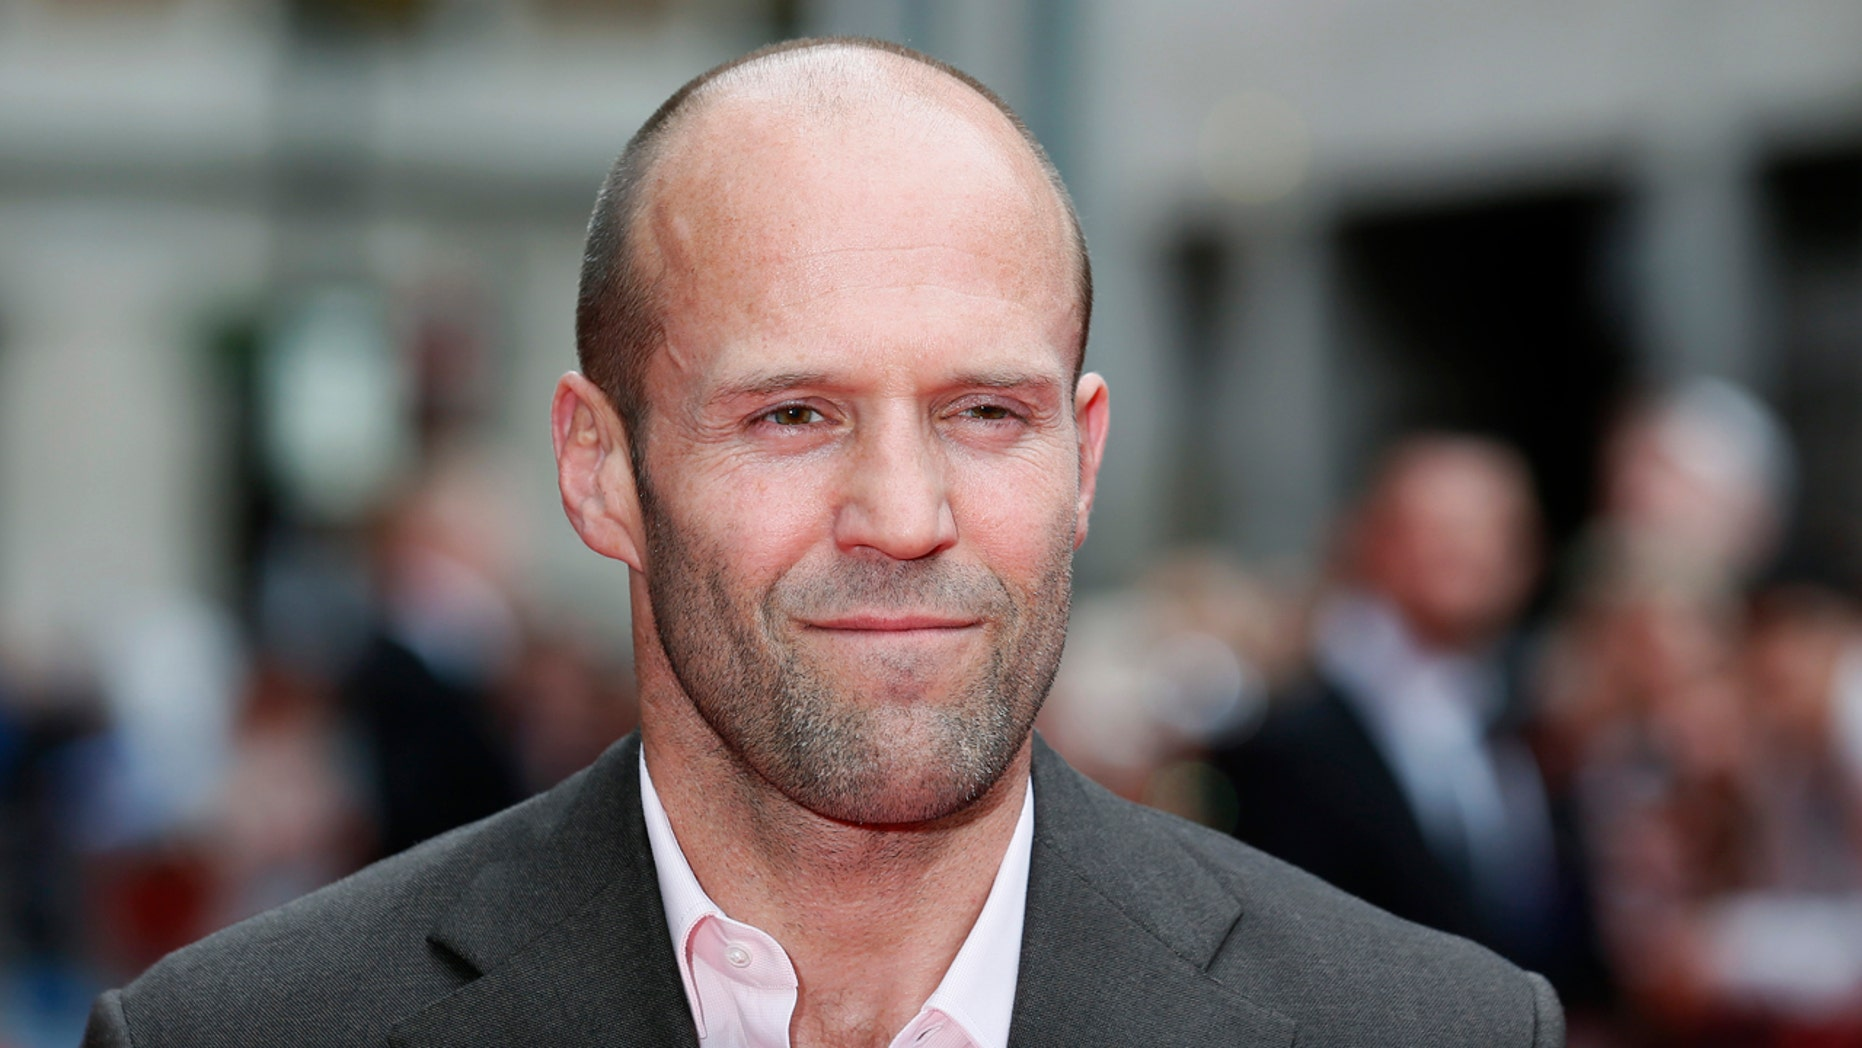 Jason Statham has issued an apology after making some homophobic remarks in an audio recording while on a 2015 film set.